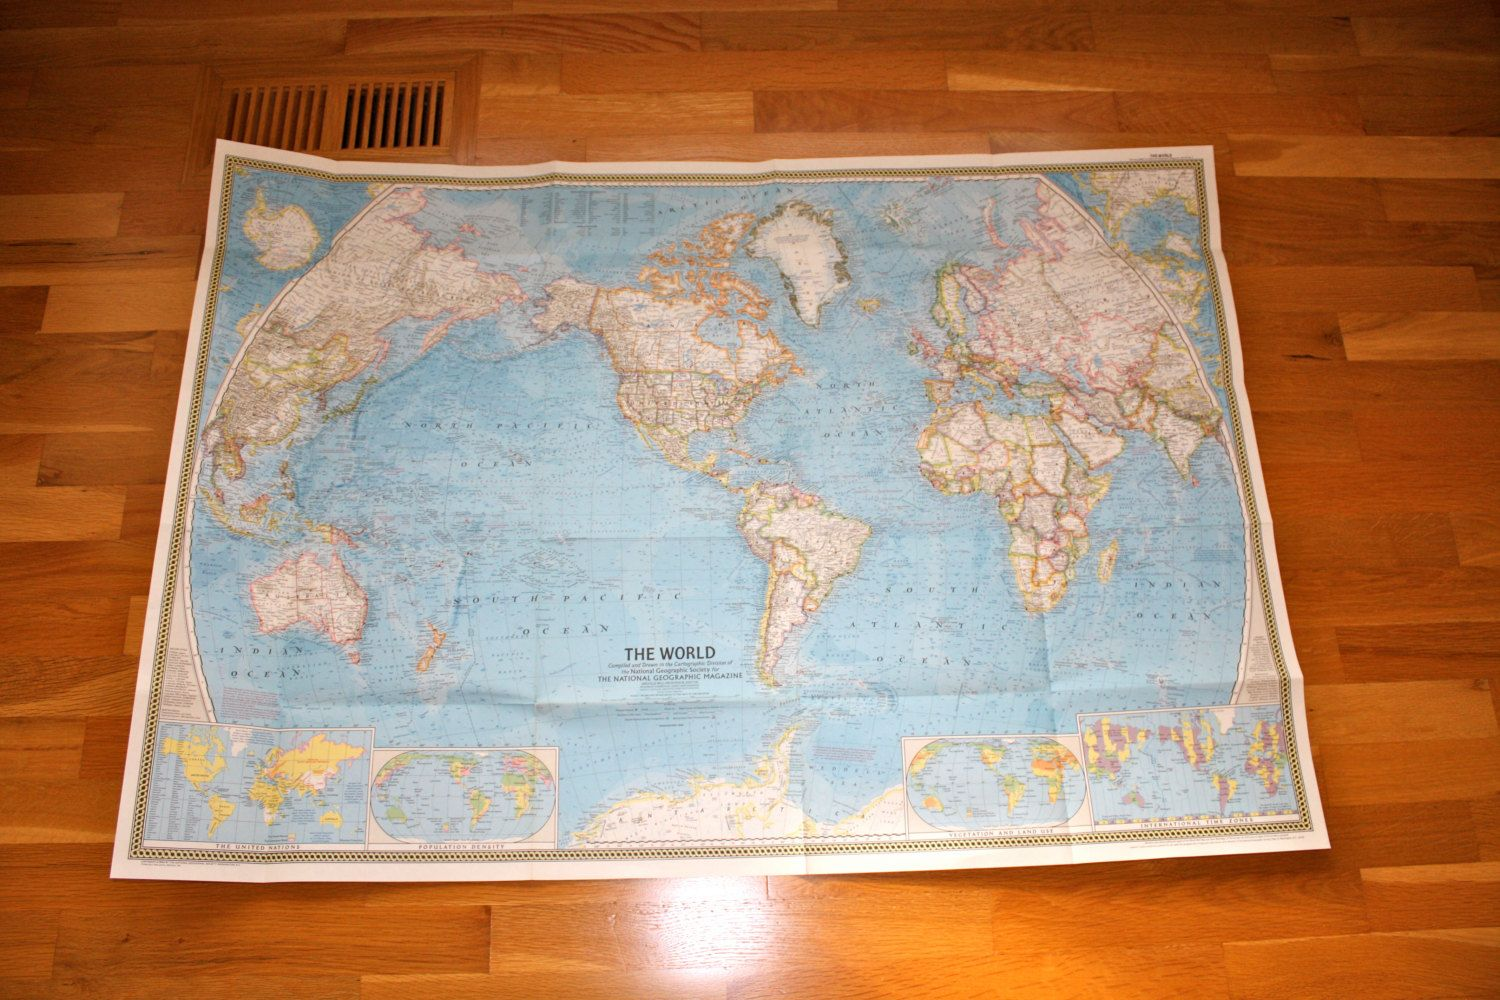 Vintage 1965 national geographic world map poster art volume 127 no 2 gumiabroncs Image collections